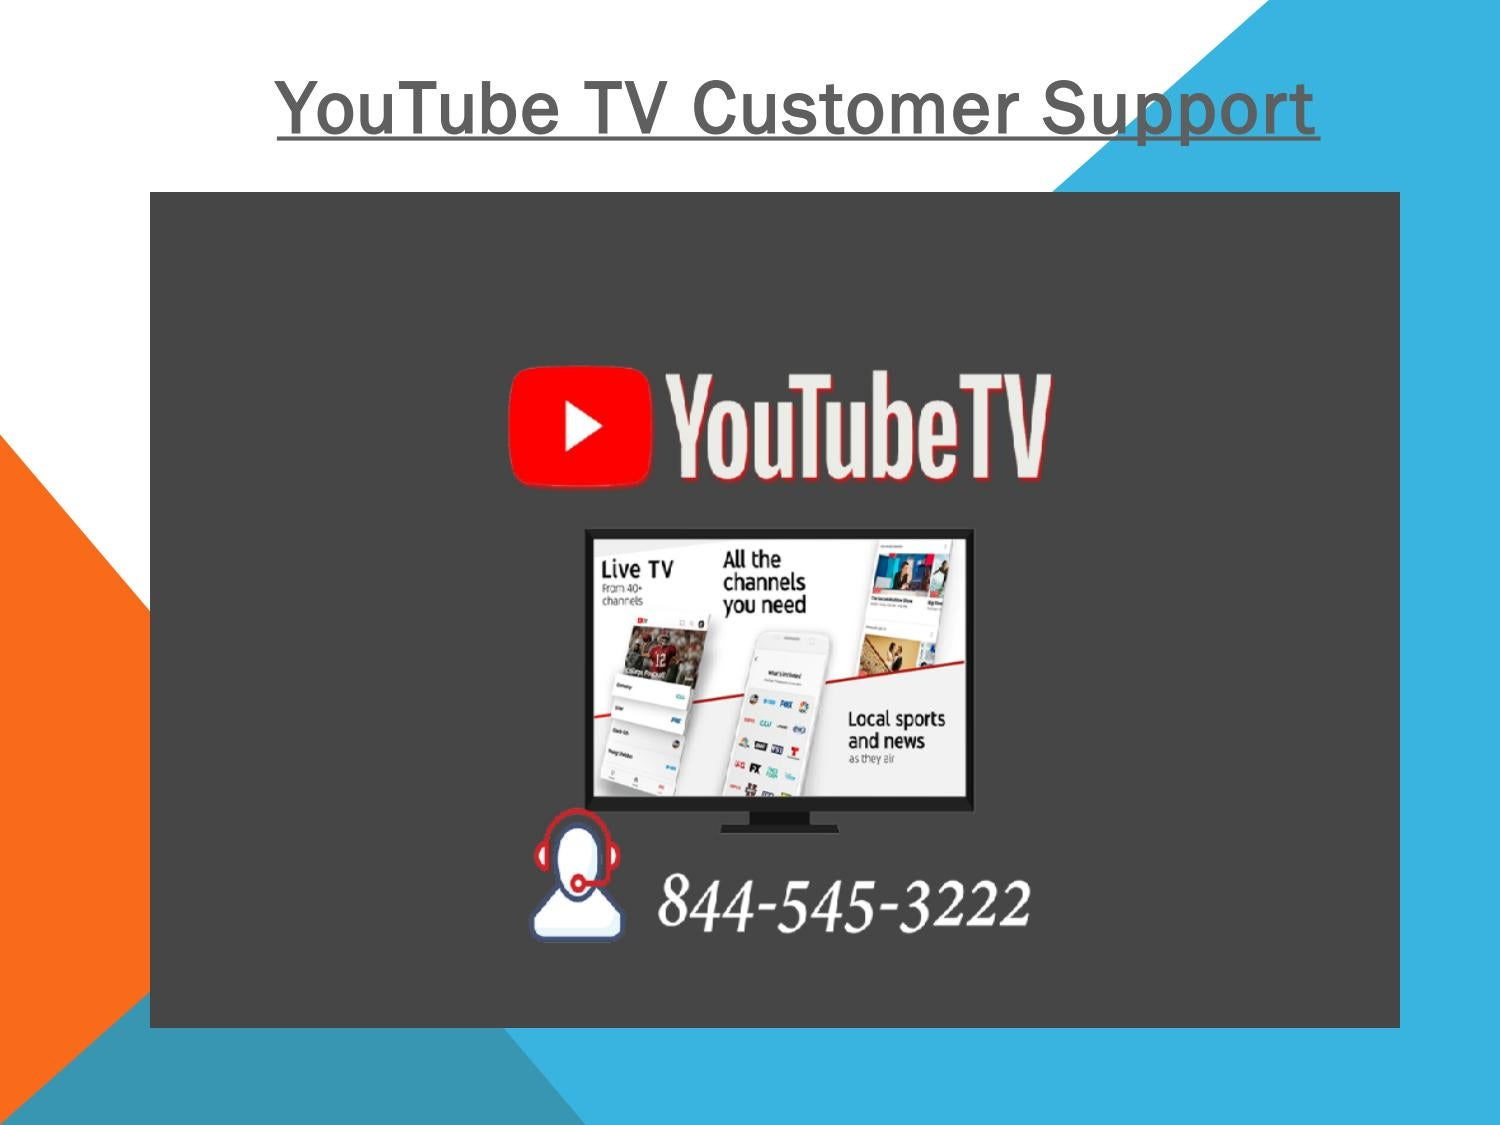 +1 844-545-3222 YouTube TV Customer Support